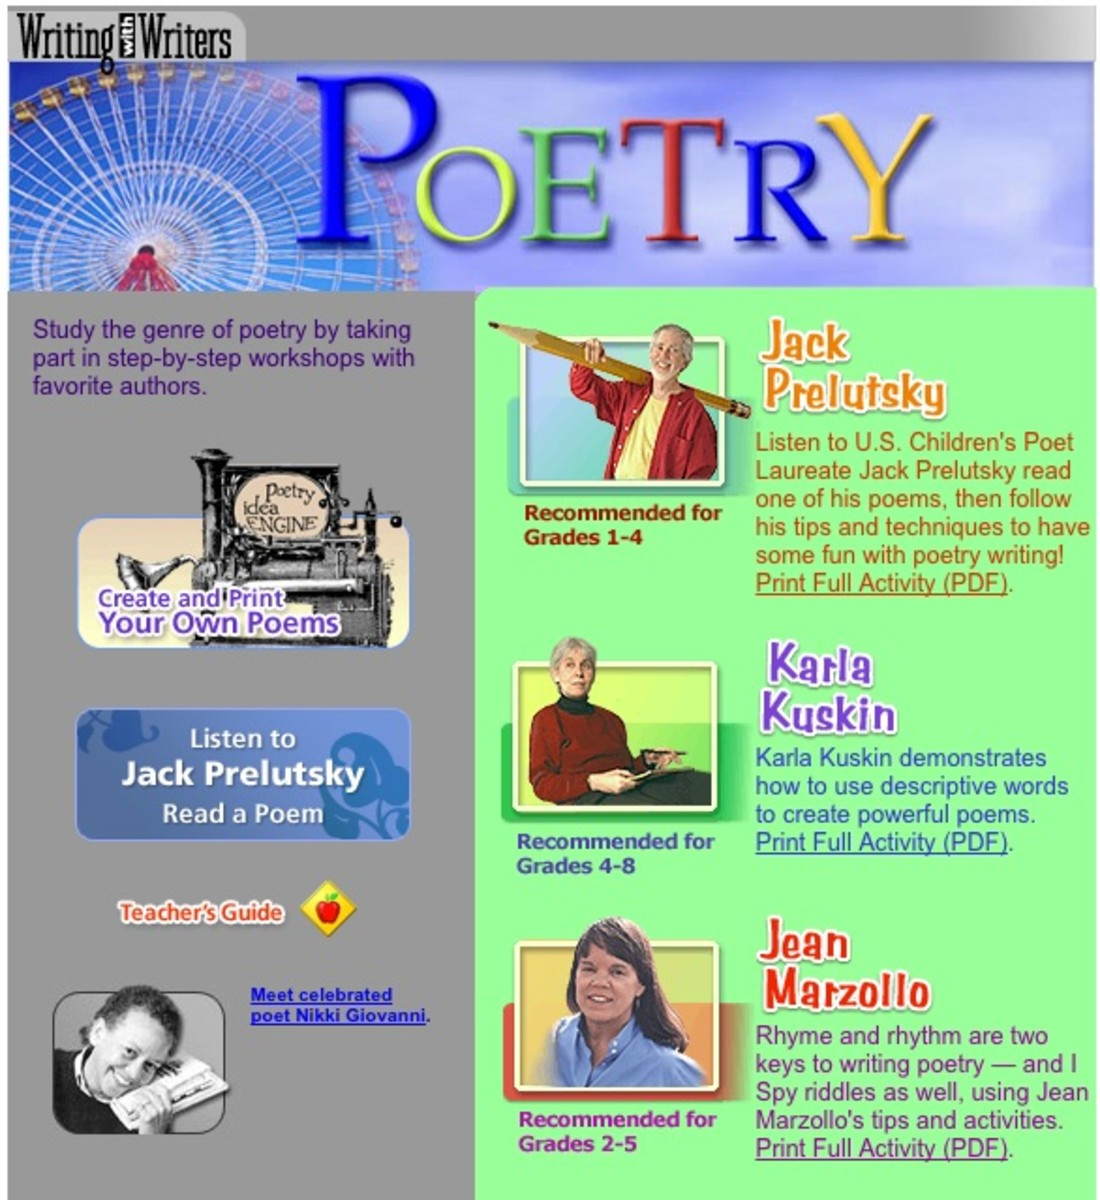 The Writing With Writers site provides lesson unit resources for poetry writing and online publication.